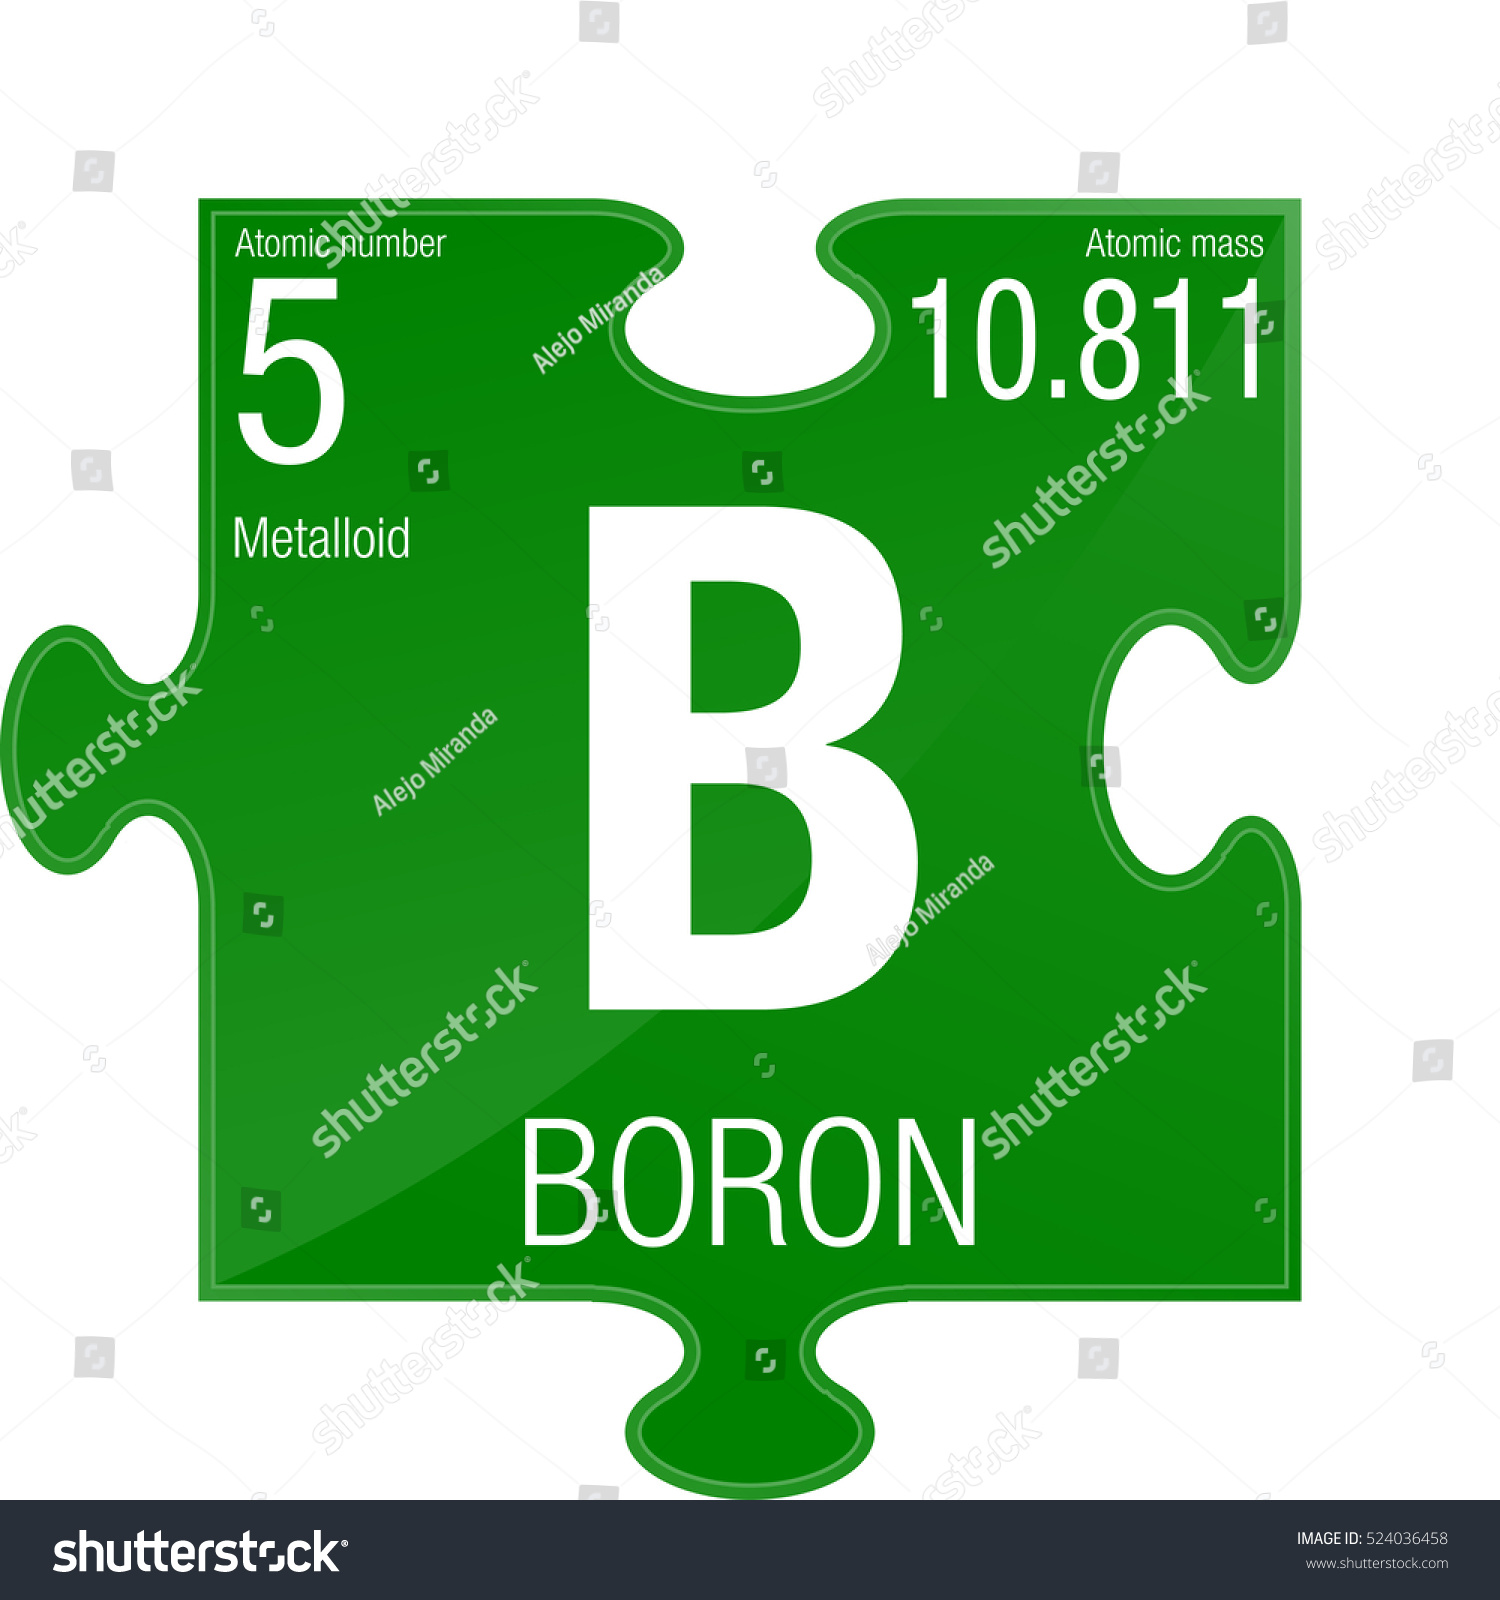 Boron symbol element number 5 periodic stock vector 524036458 boron symbol element number 5 of the periodic table of the elements chemistry gamestrikefo Image collections